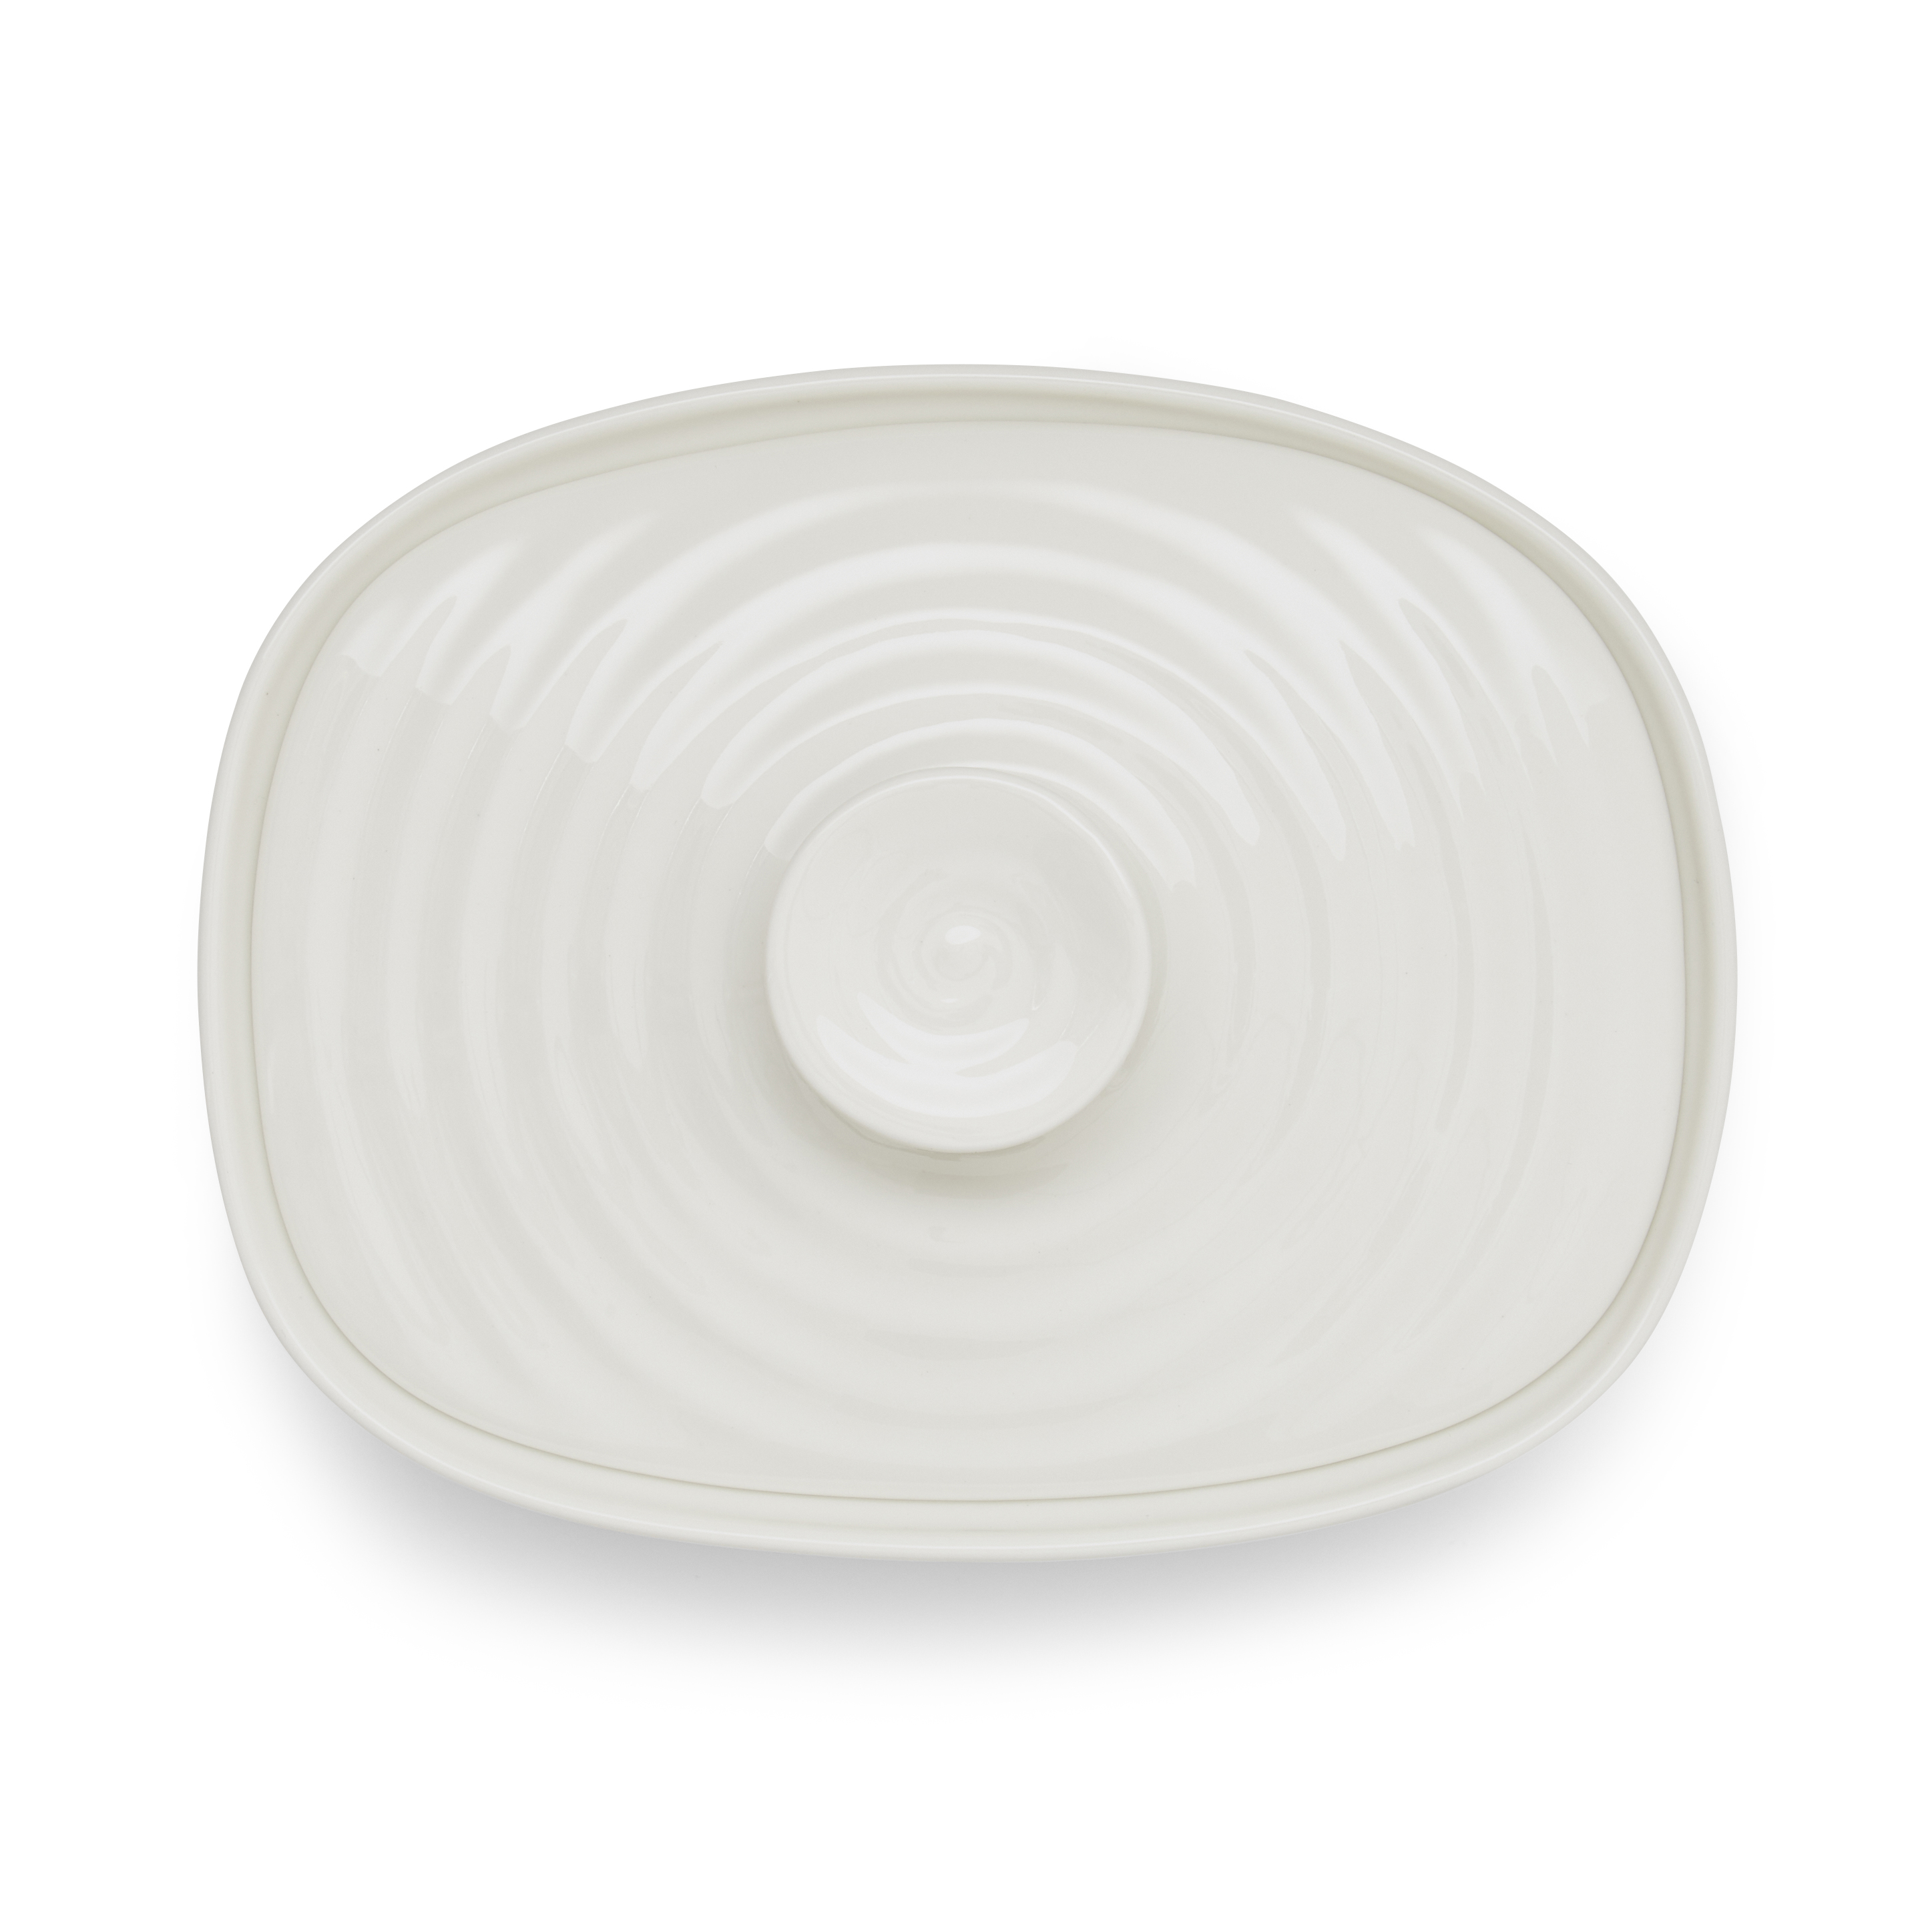 Portmeirion Sophie Conran White Covered Butter image number 2